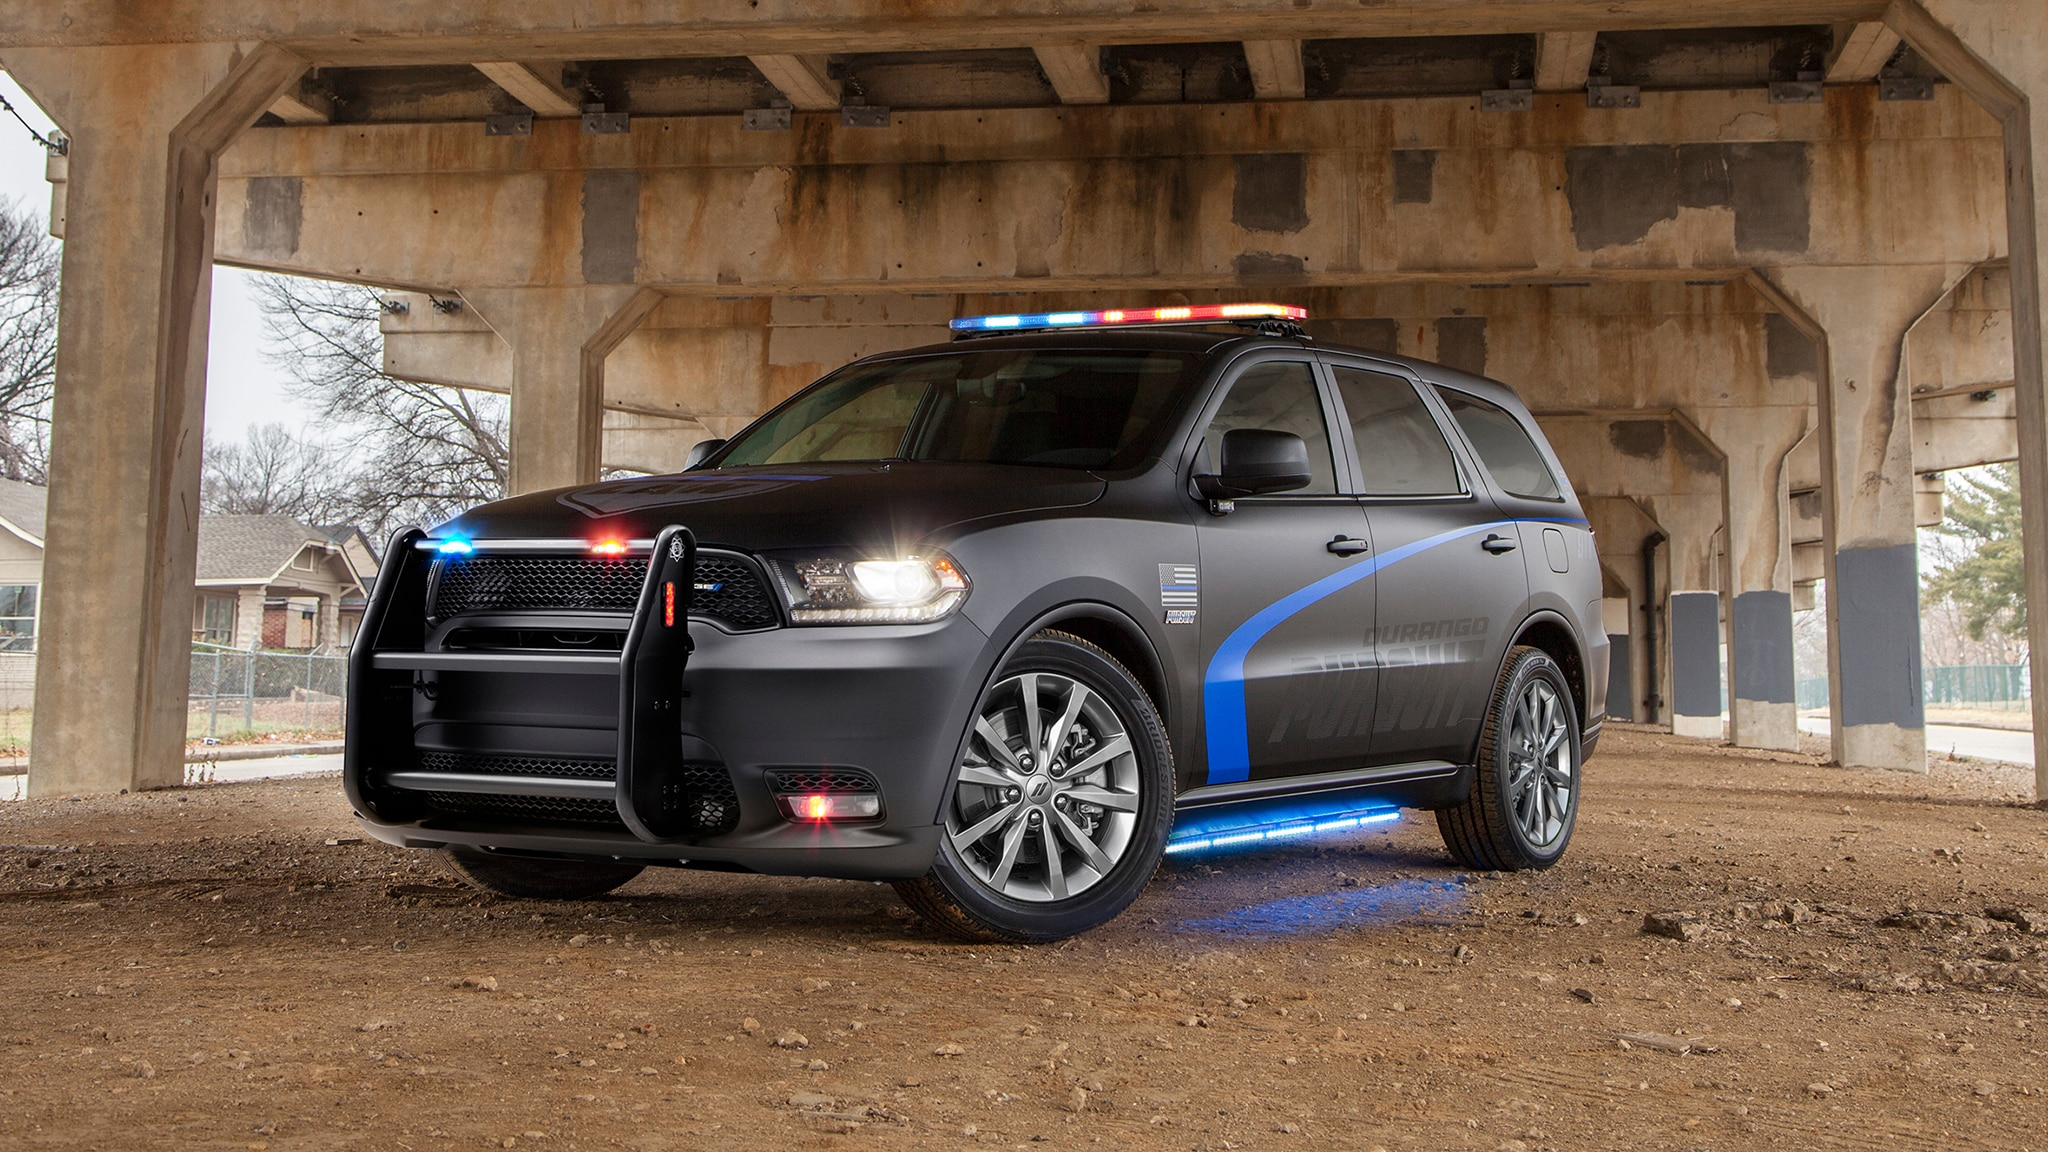 2019 Dodge Durango Pursuit 1